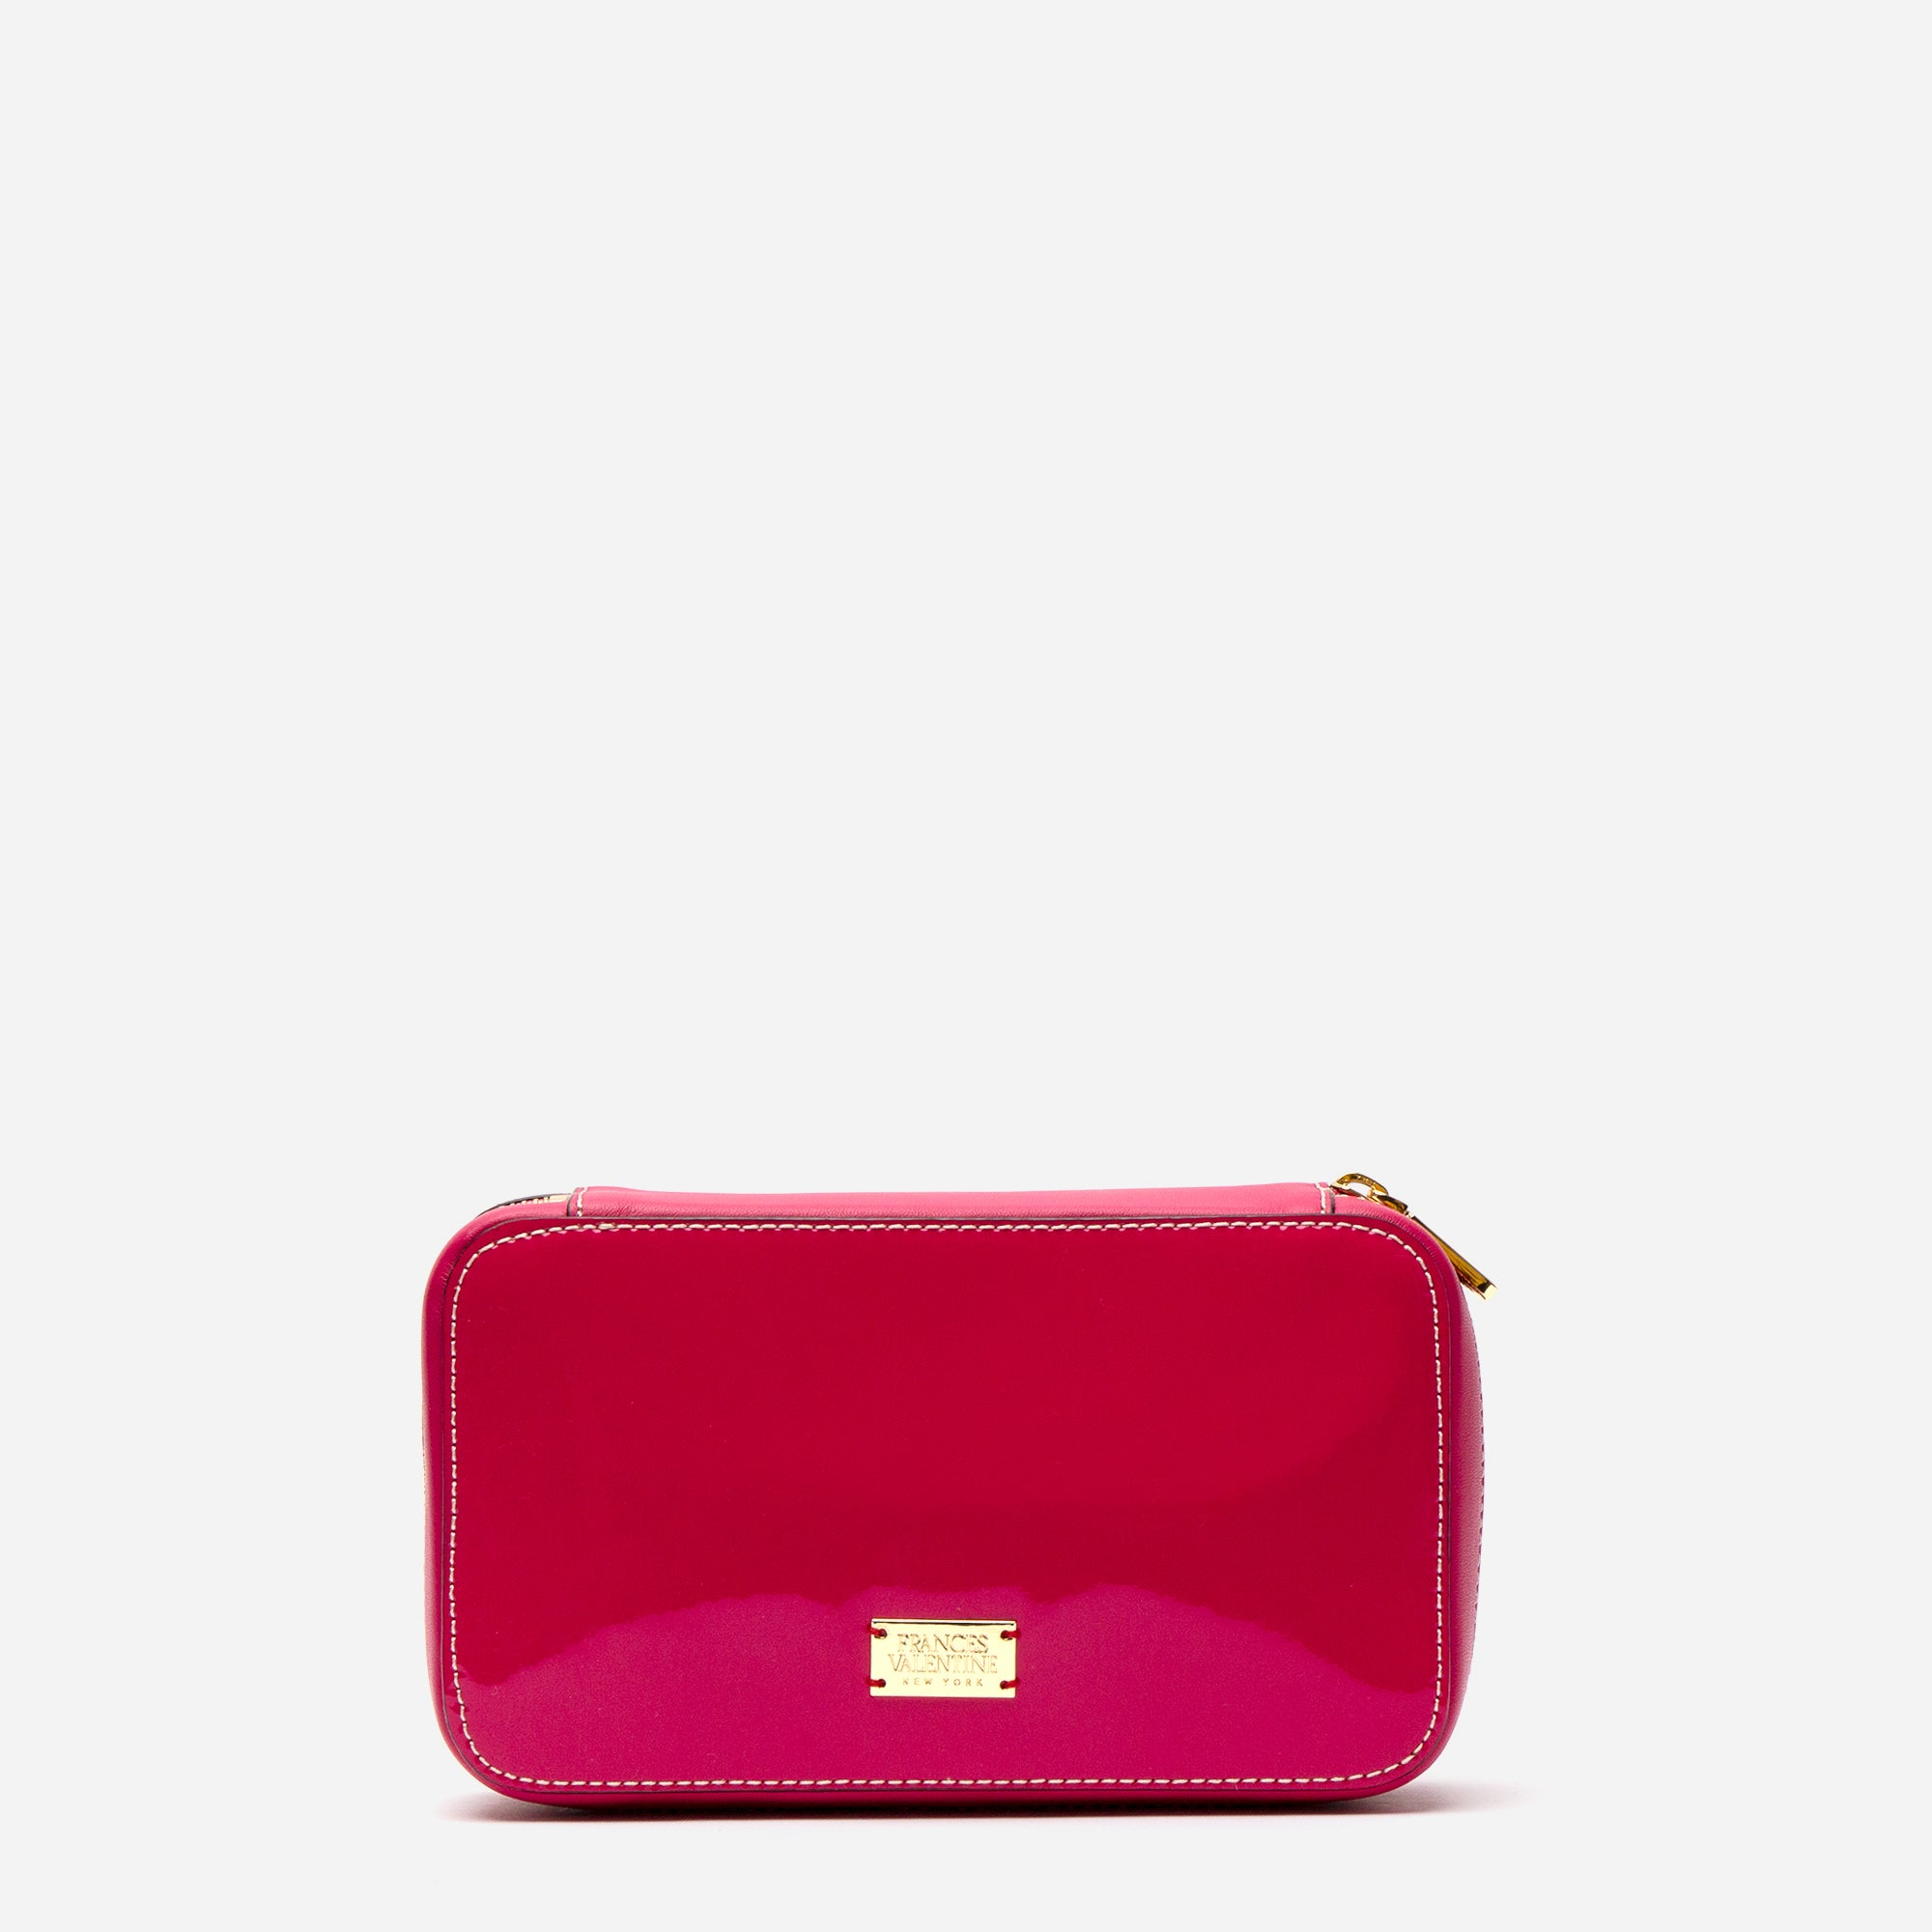 Jewelry Case Soft Patent Leather Pink